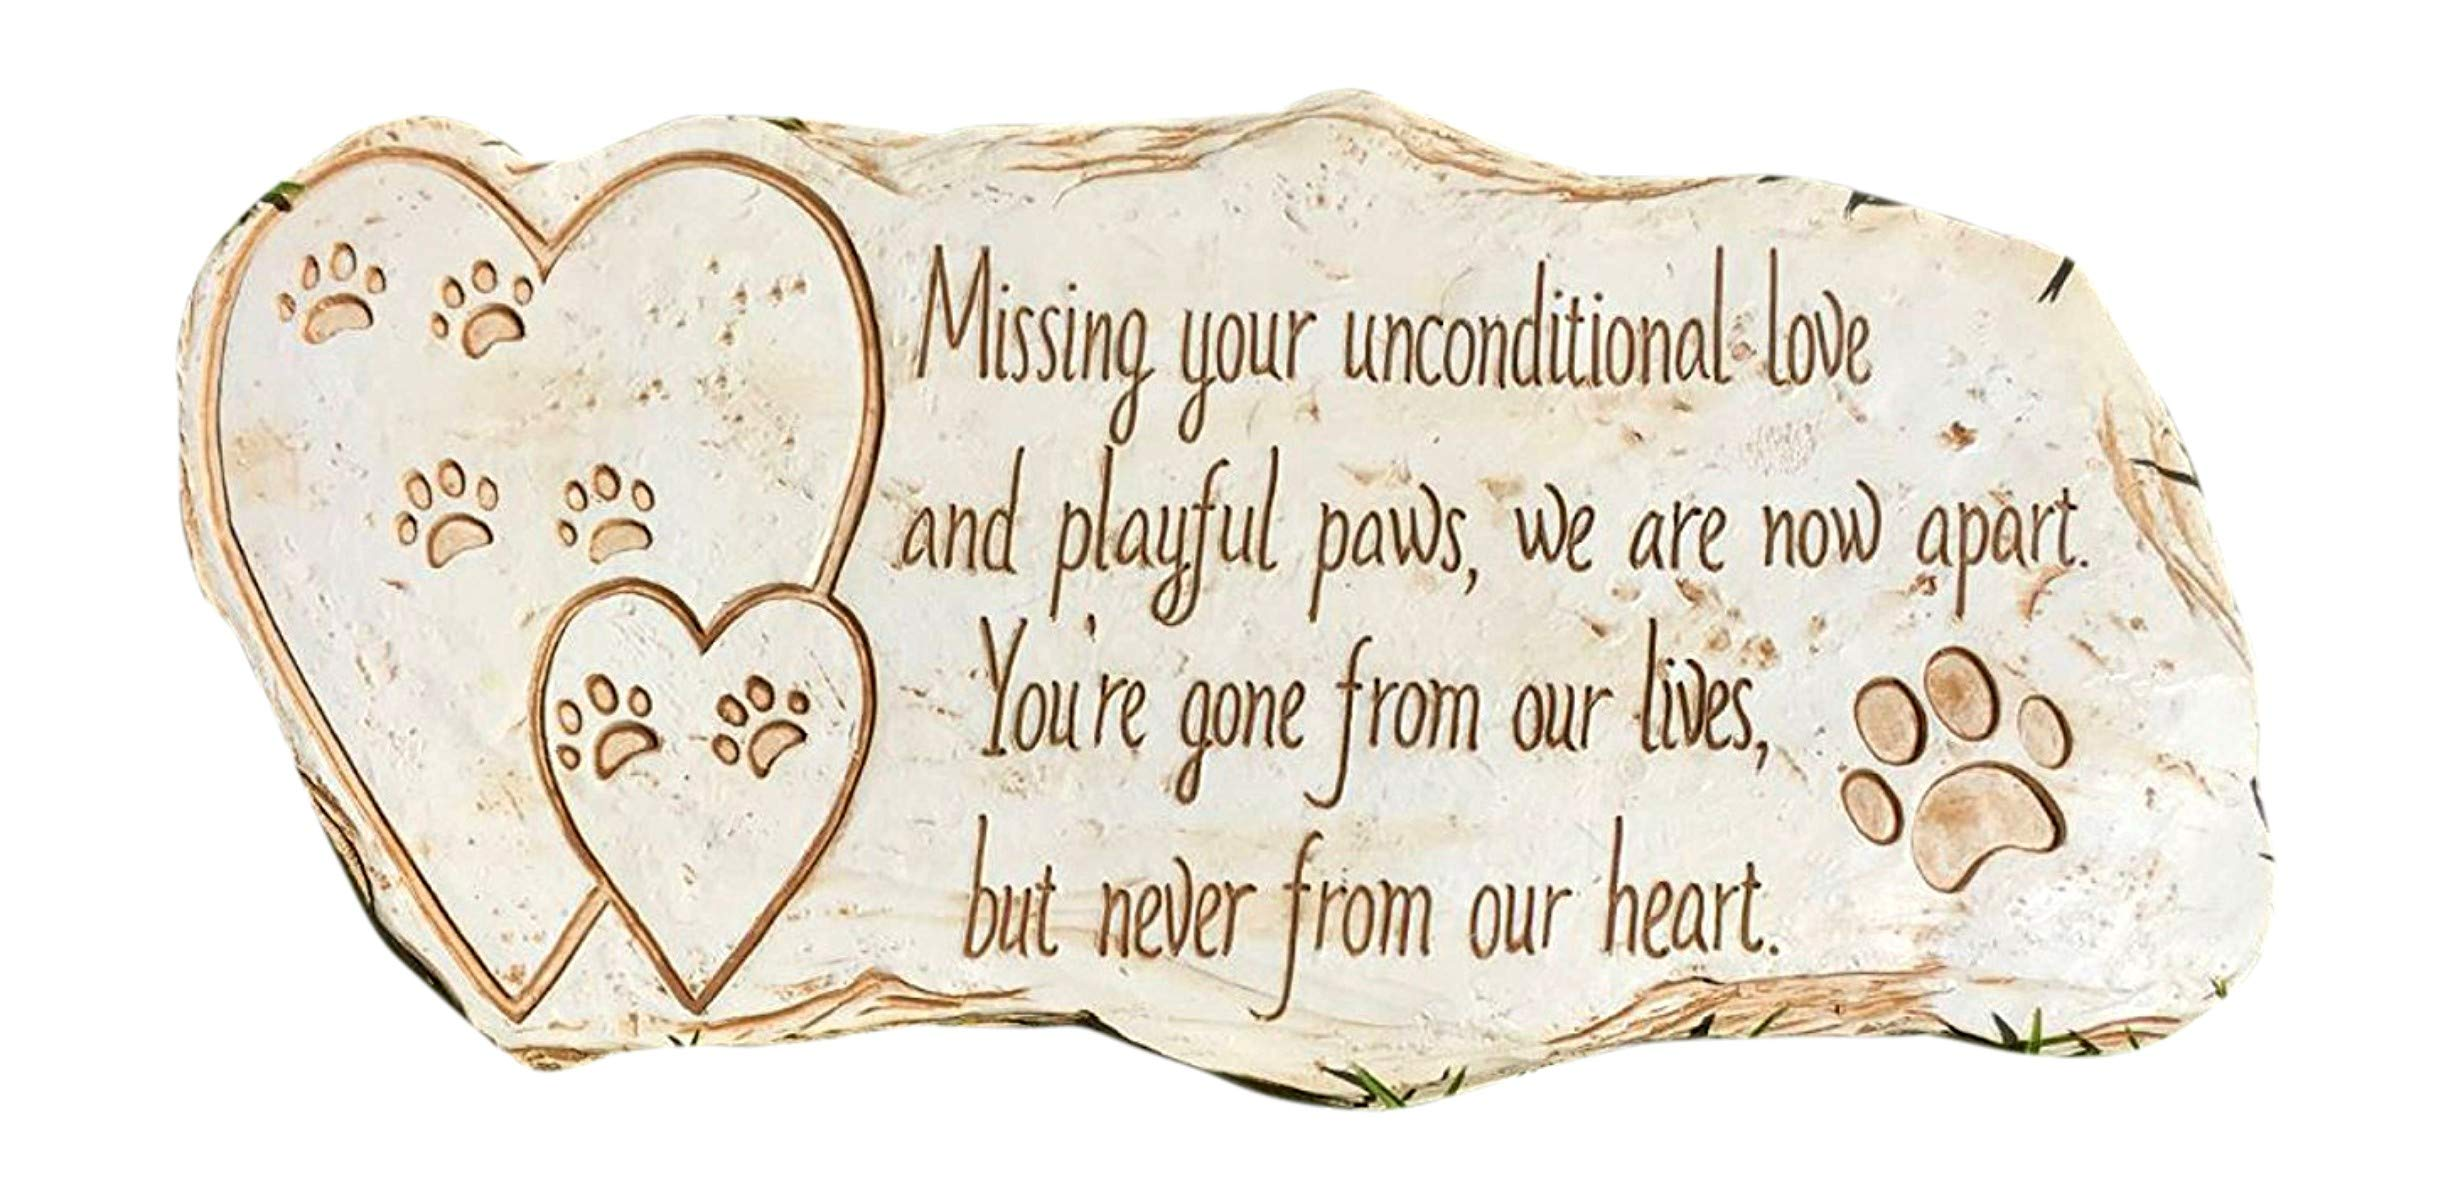 dog supplies online pawprints remembered pet memorial stone marker for dog or cat - for outdoor garden, backyard, or lawn. pet grave headstone tombstone - loss of pet gift - made of weatherproof resin